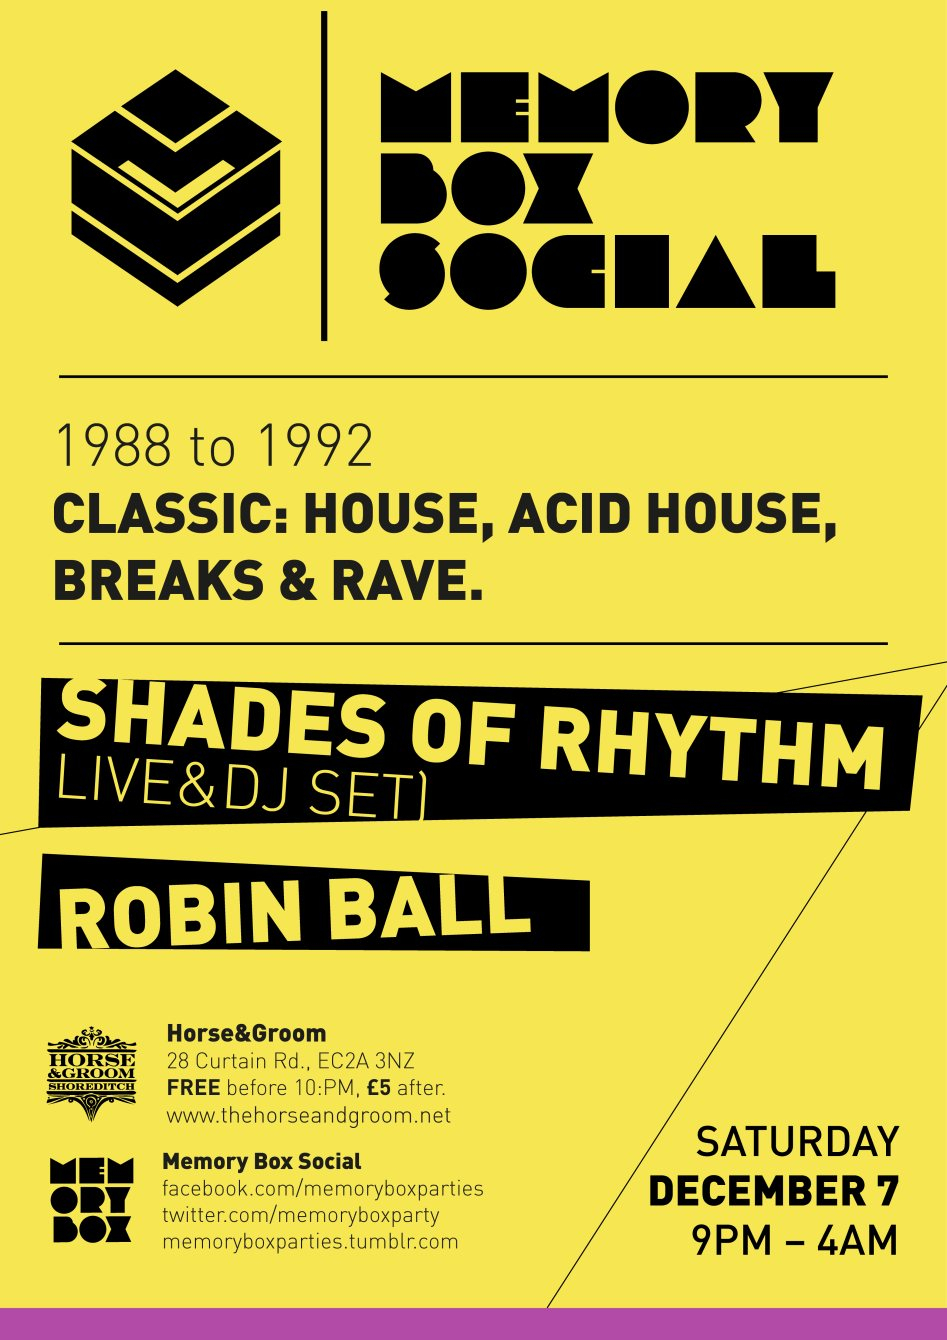 Ra memory box social with shades of rhythm live 88 92 for Acid house classics